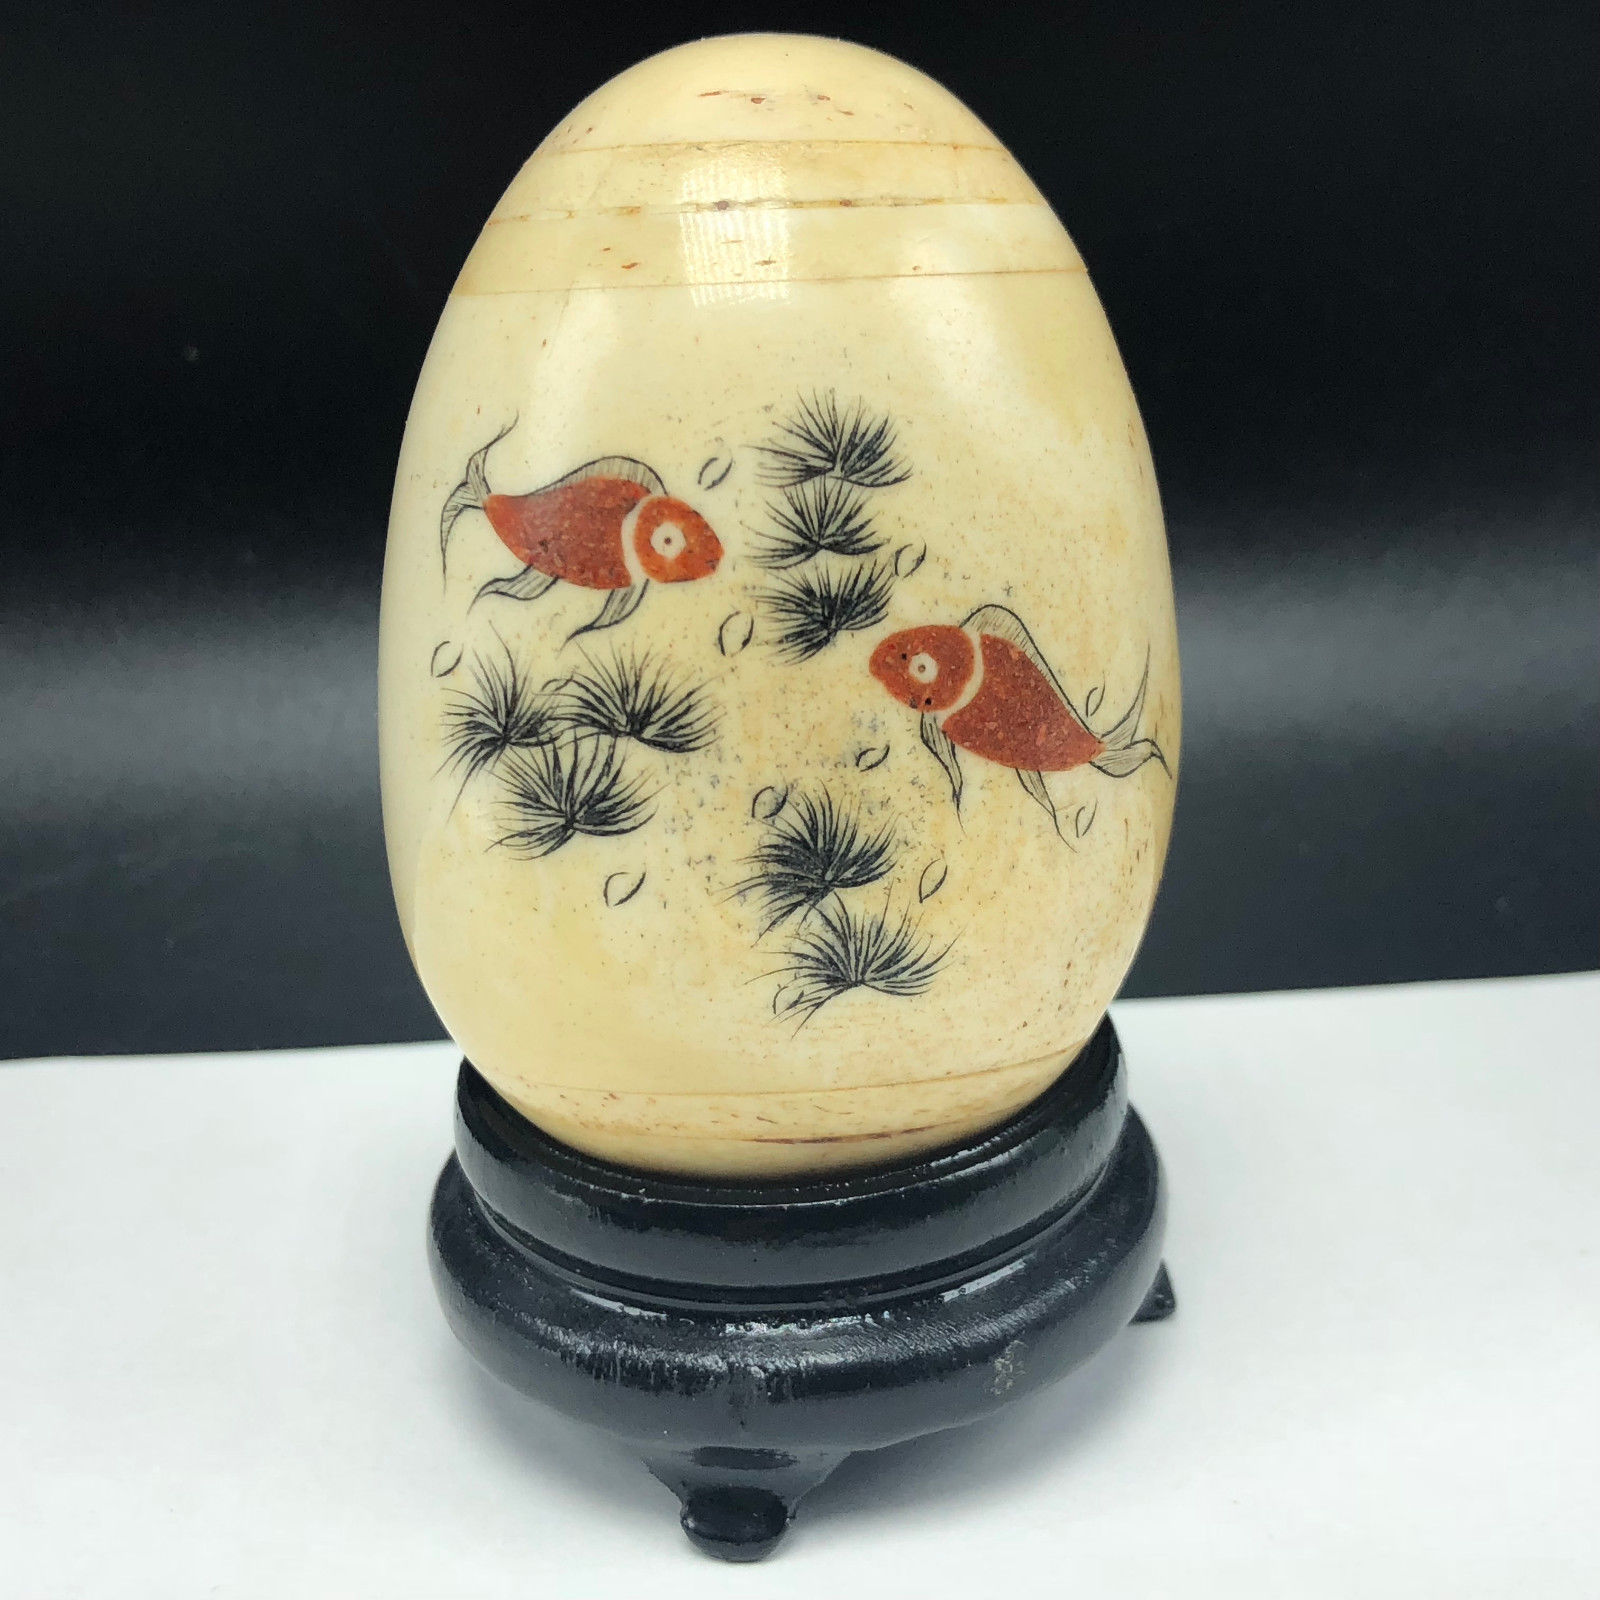 Collectible Marble Glaze Egg Figurine Statue and 50 similar